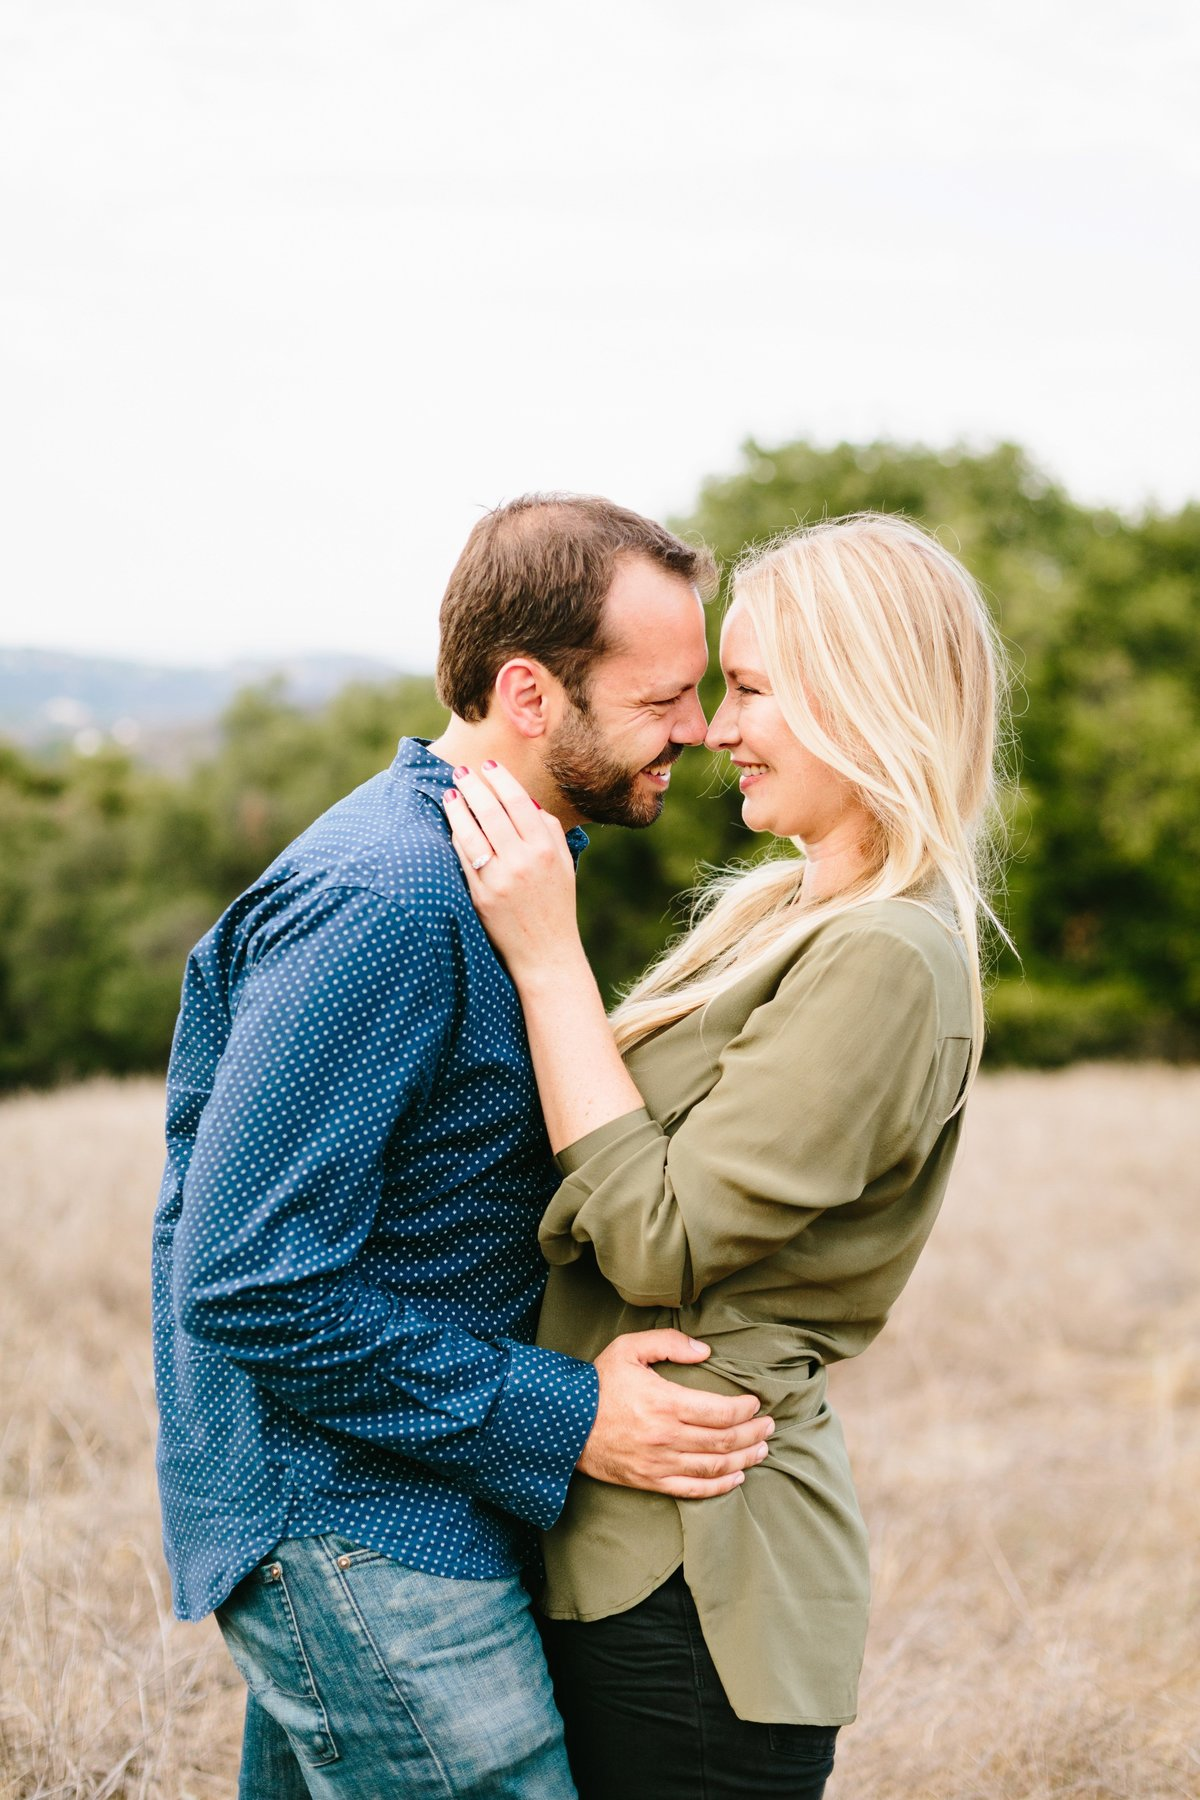 Best California Engagement Photographer-Jodee Debes Photography-185